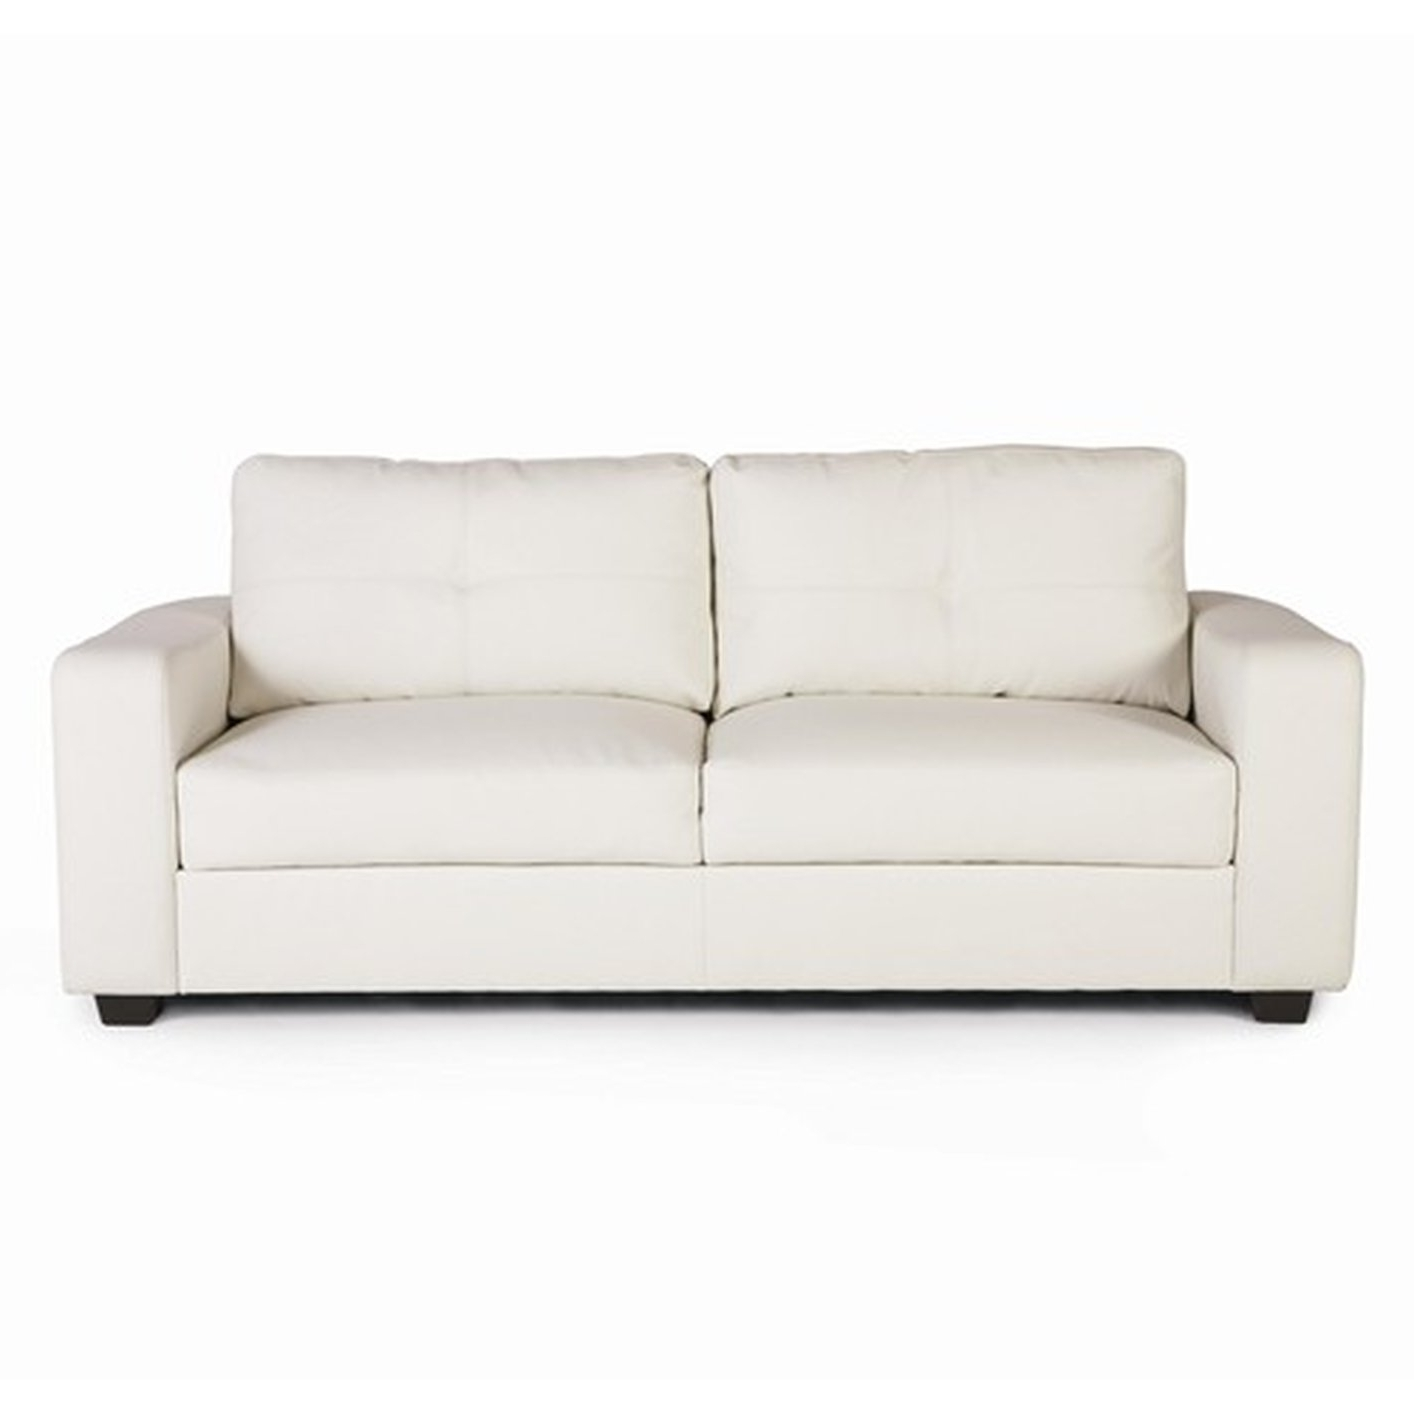 Jasmine White Leather Sofa – Steal A Sofa Furniture Outlet Los For Trendy White Sofa Chairs (Gallery 15 of 15)